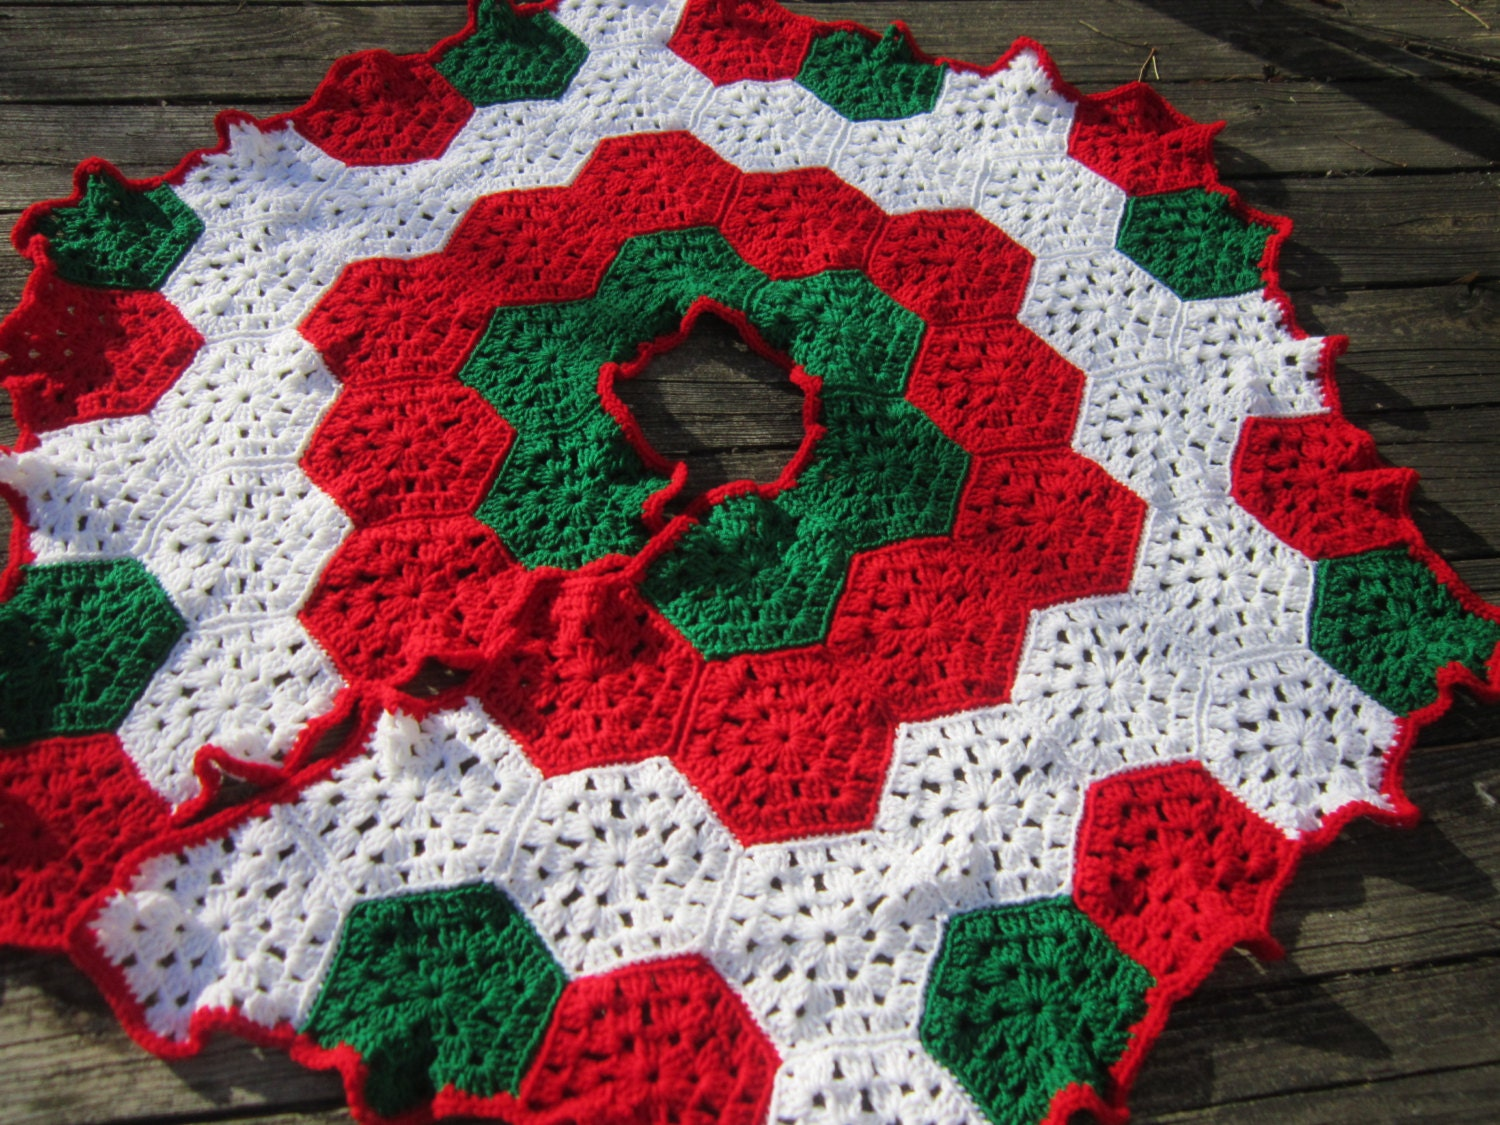 Free Crochet Granny Square Christmas Tree Pattern : Christmas Tree Skirt Crocheted Granny Hexagons in Red Green